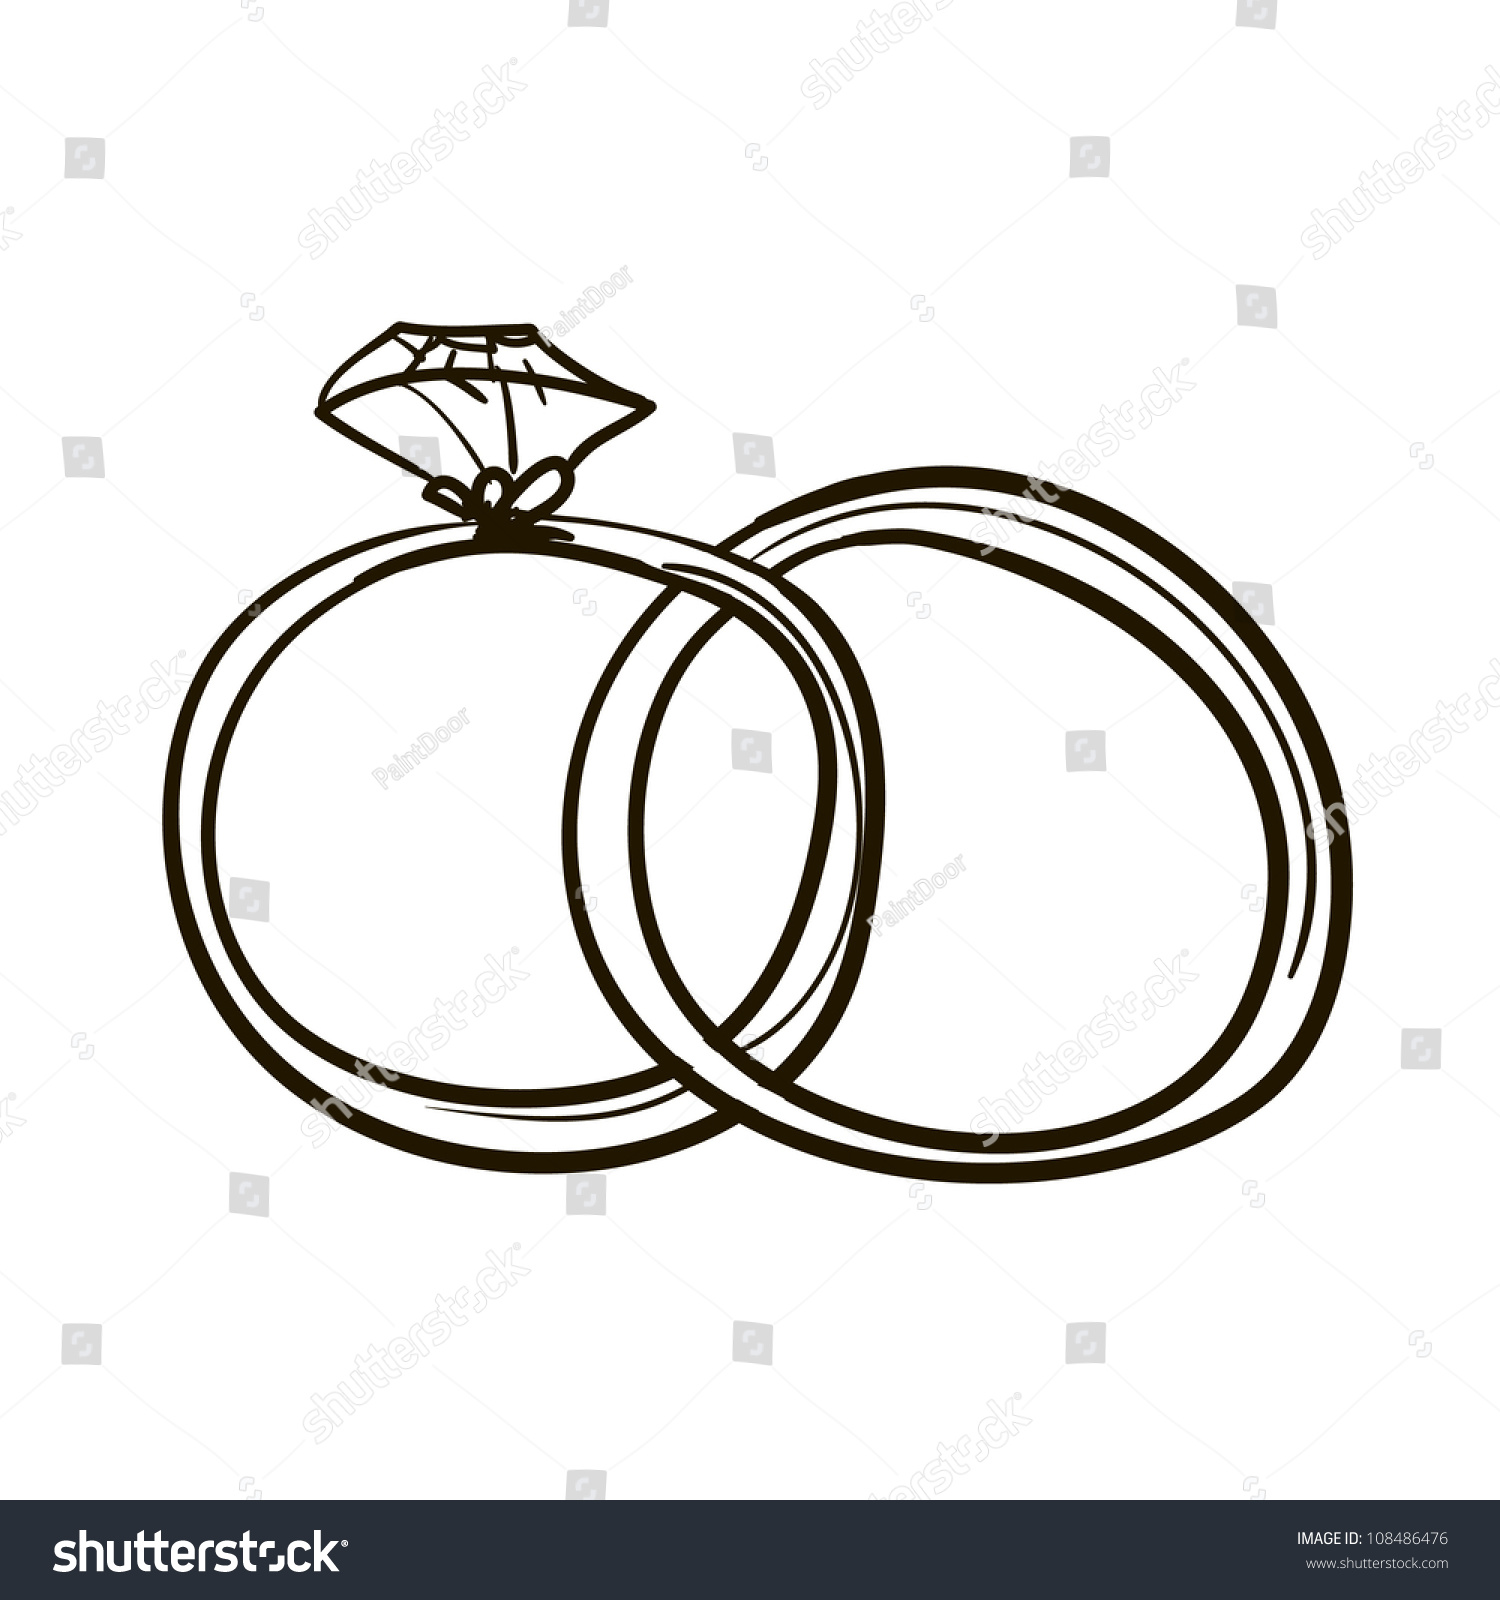 Luxury Wedding Rings Black and White Clipart